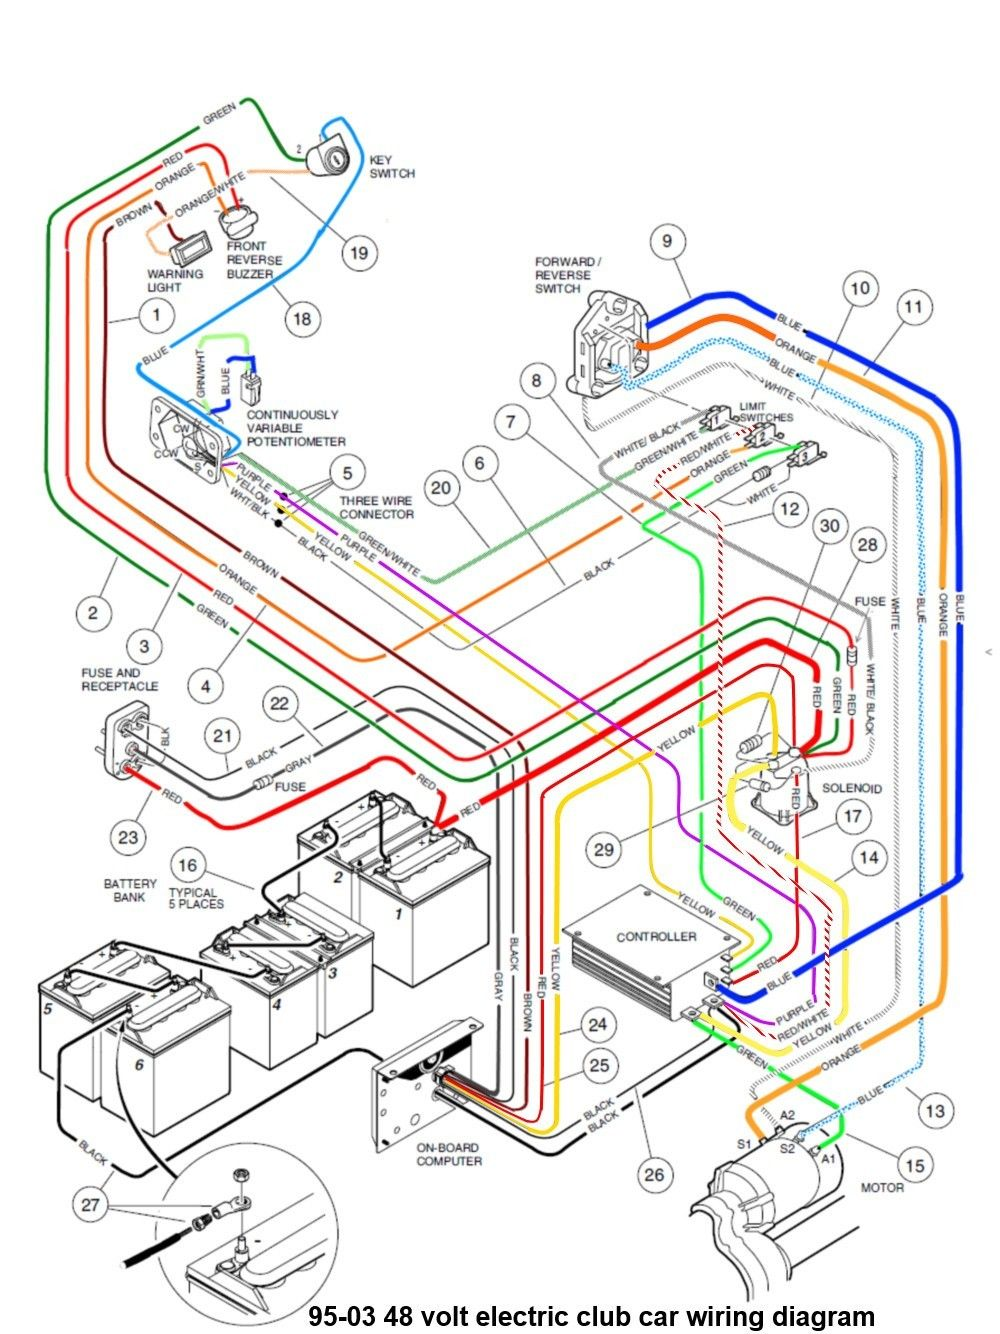 Foward And Reverse Diagram For 2007 Club Car Awesome Di 2020